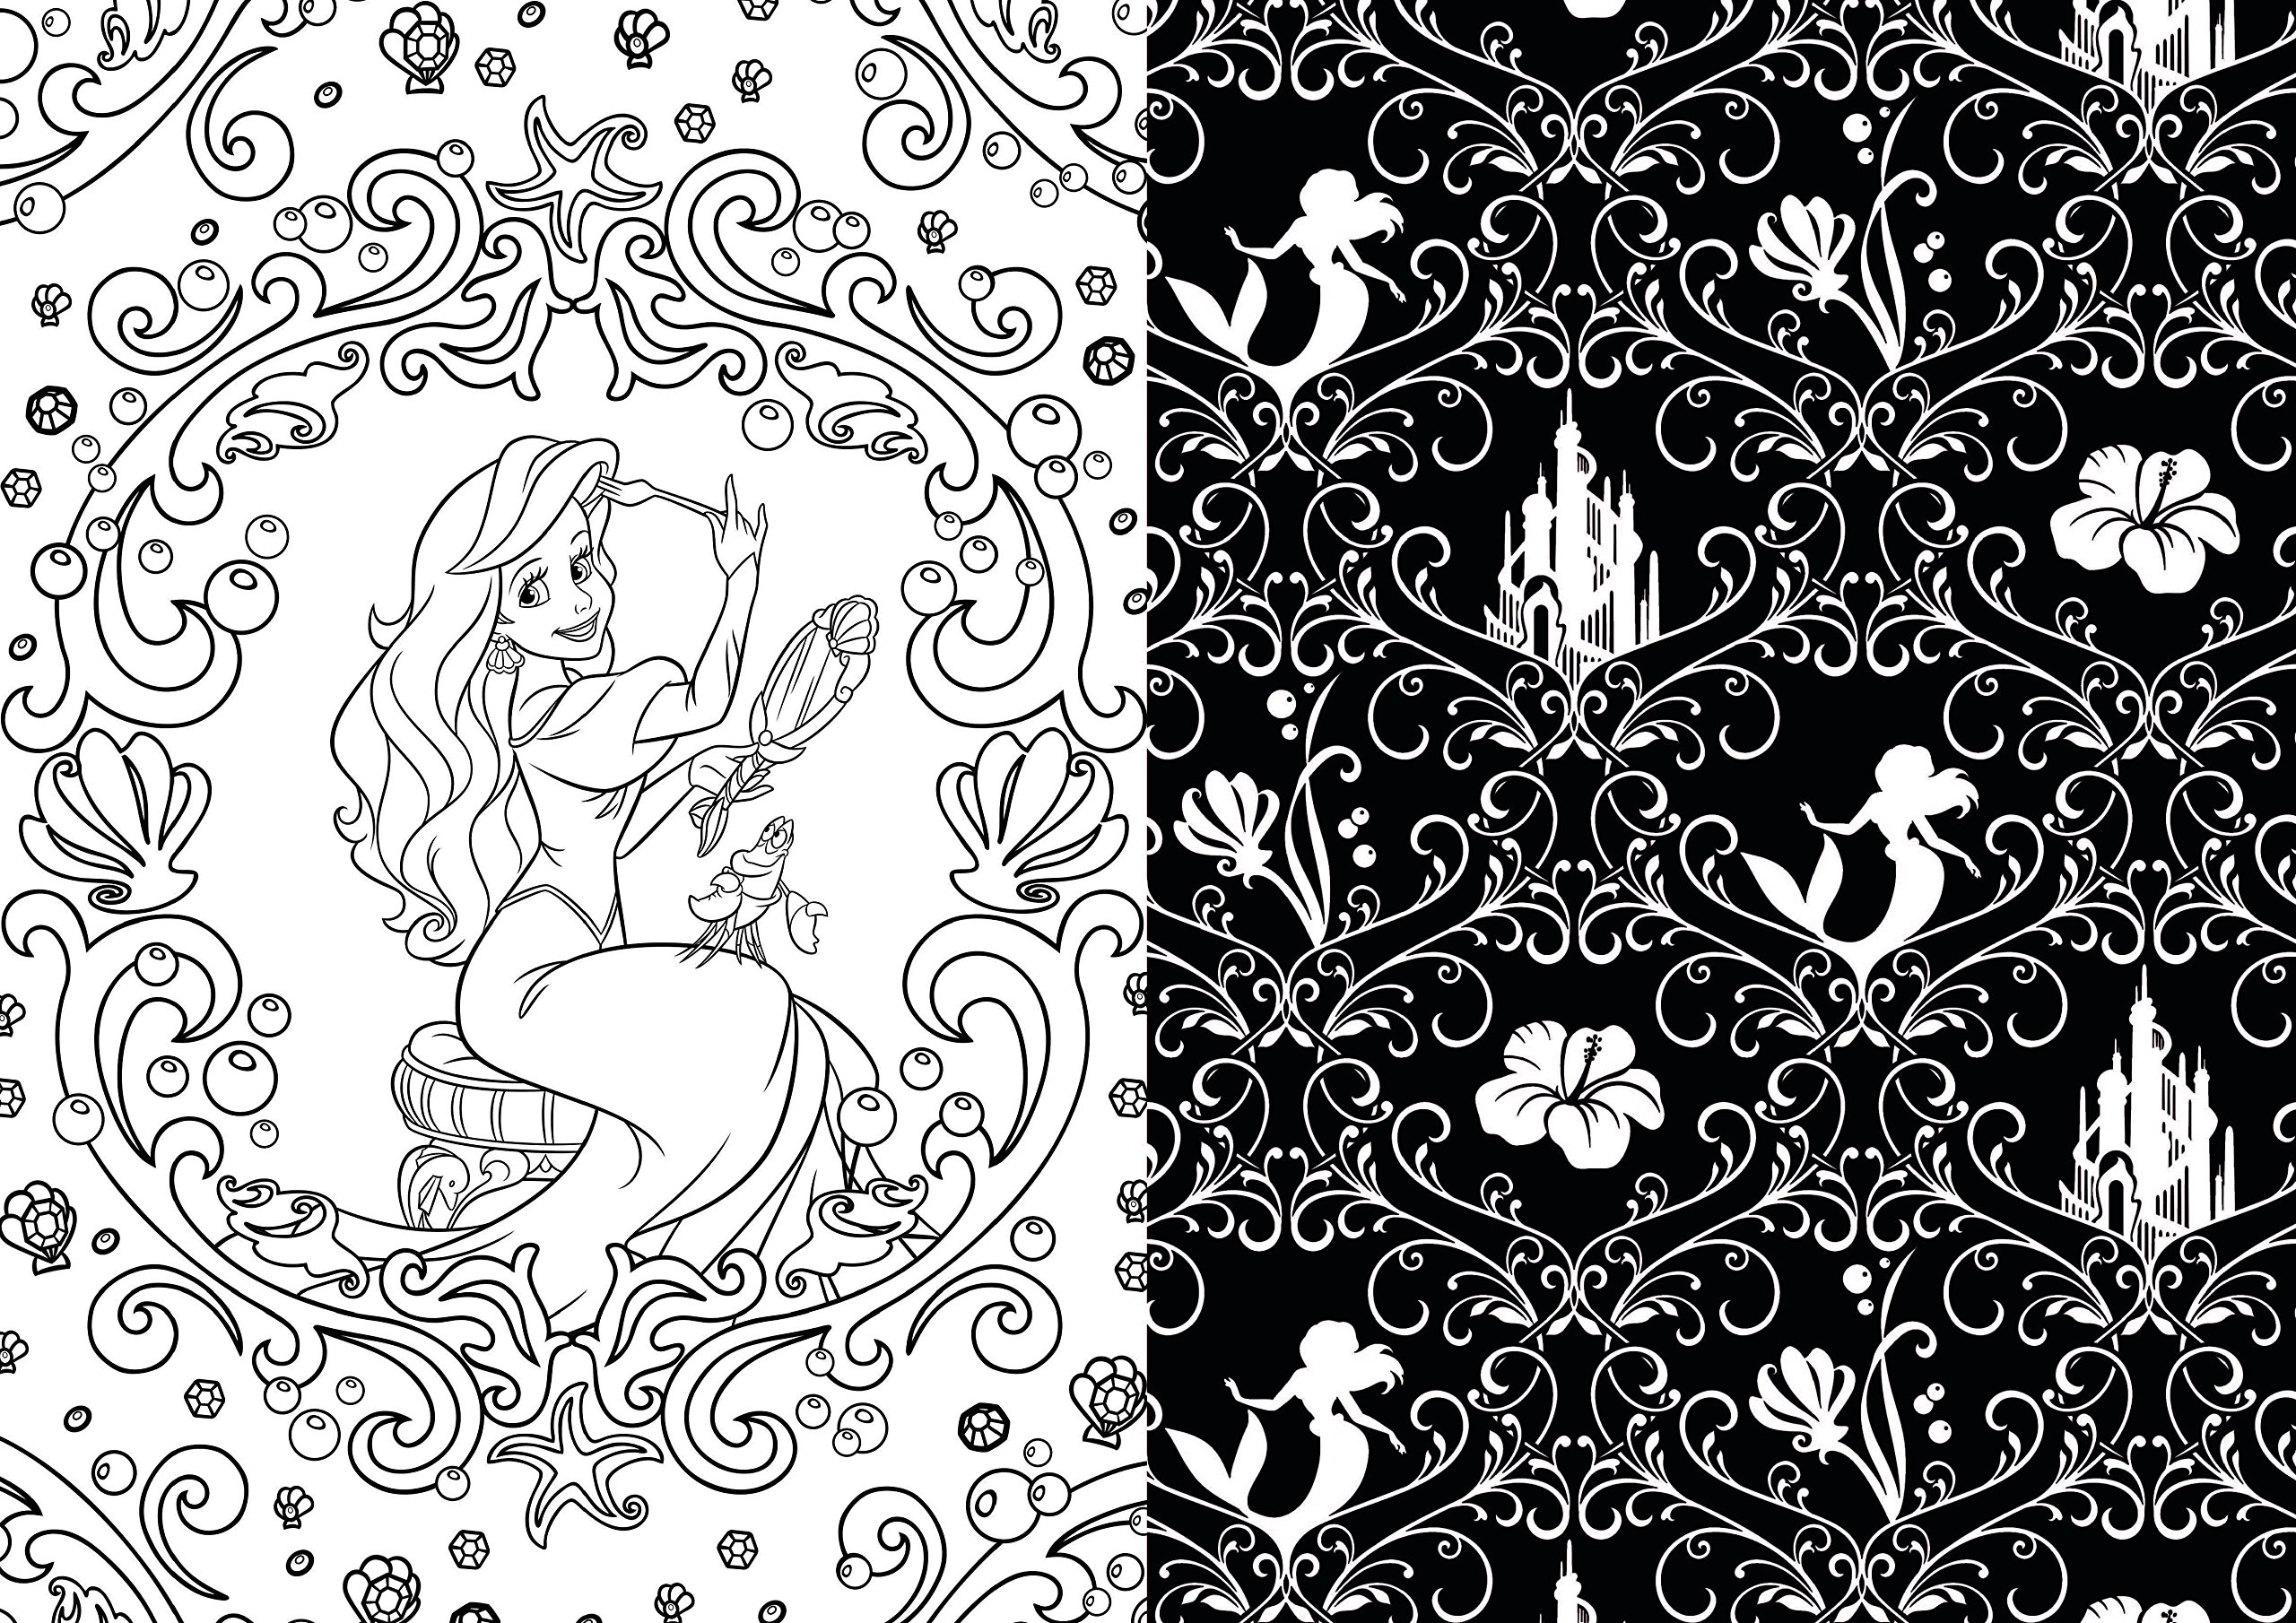 art of coloring disney princess 100 images to inspire creativity and relaxation art therapy catherine saunier talec anne le meur 0725961057404 - Pattern Coloring Books